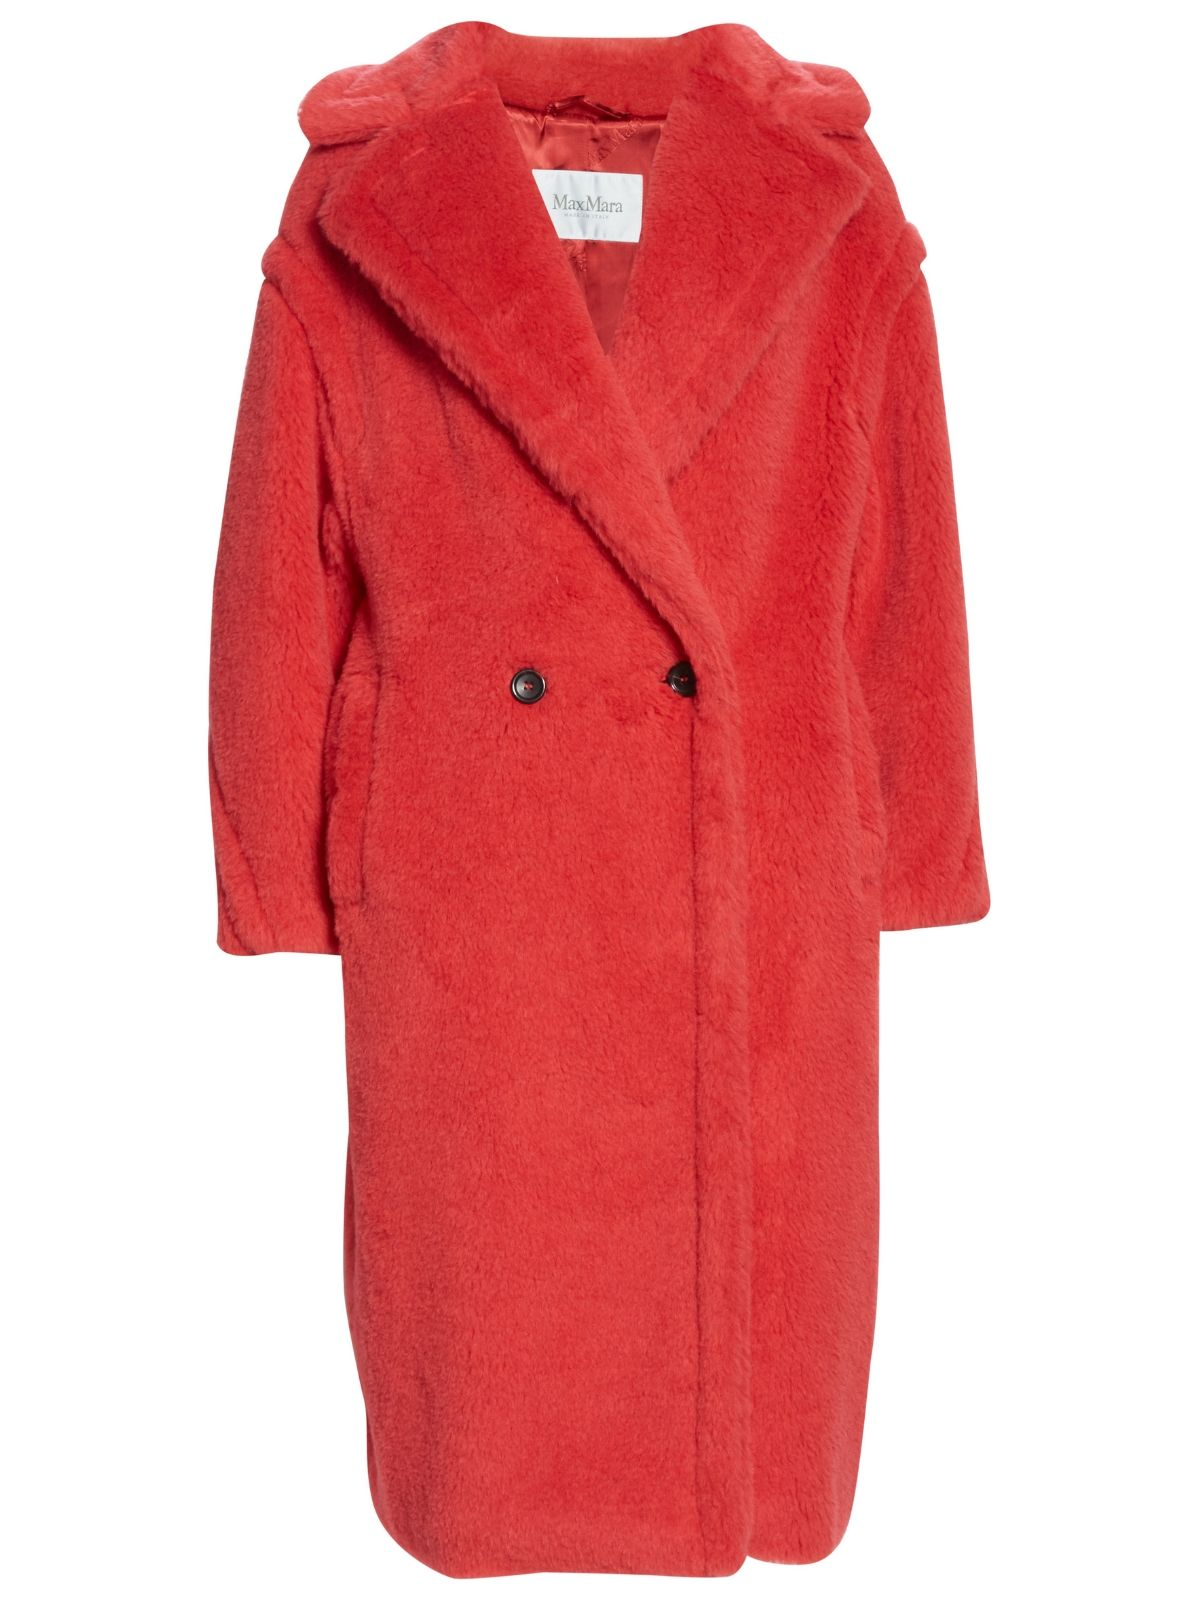 Max Mara Tedgirl Faux-Fur Teddy Bear coat